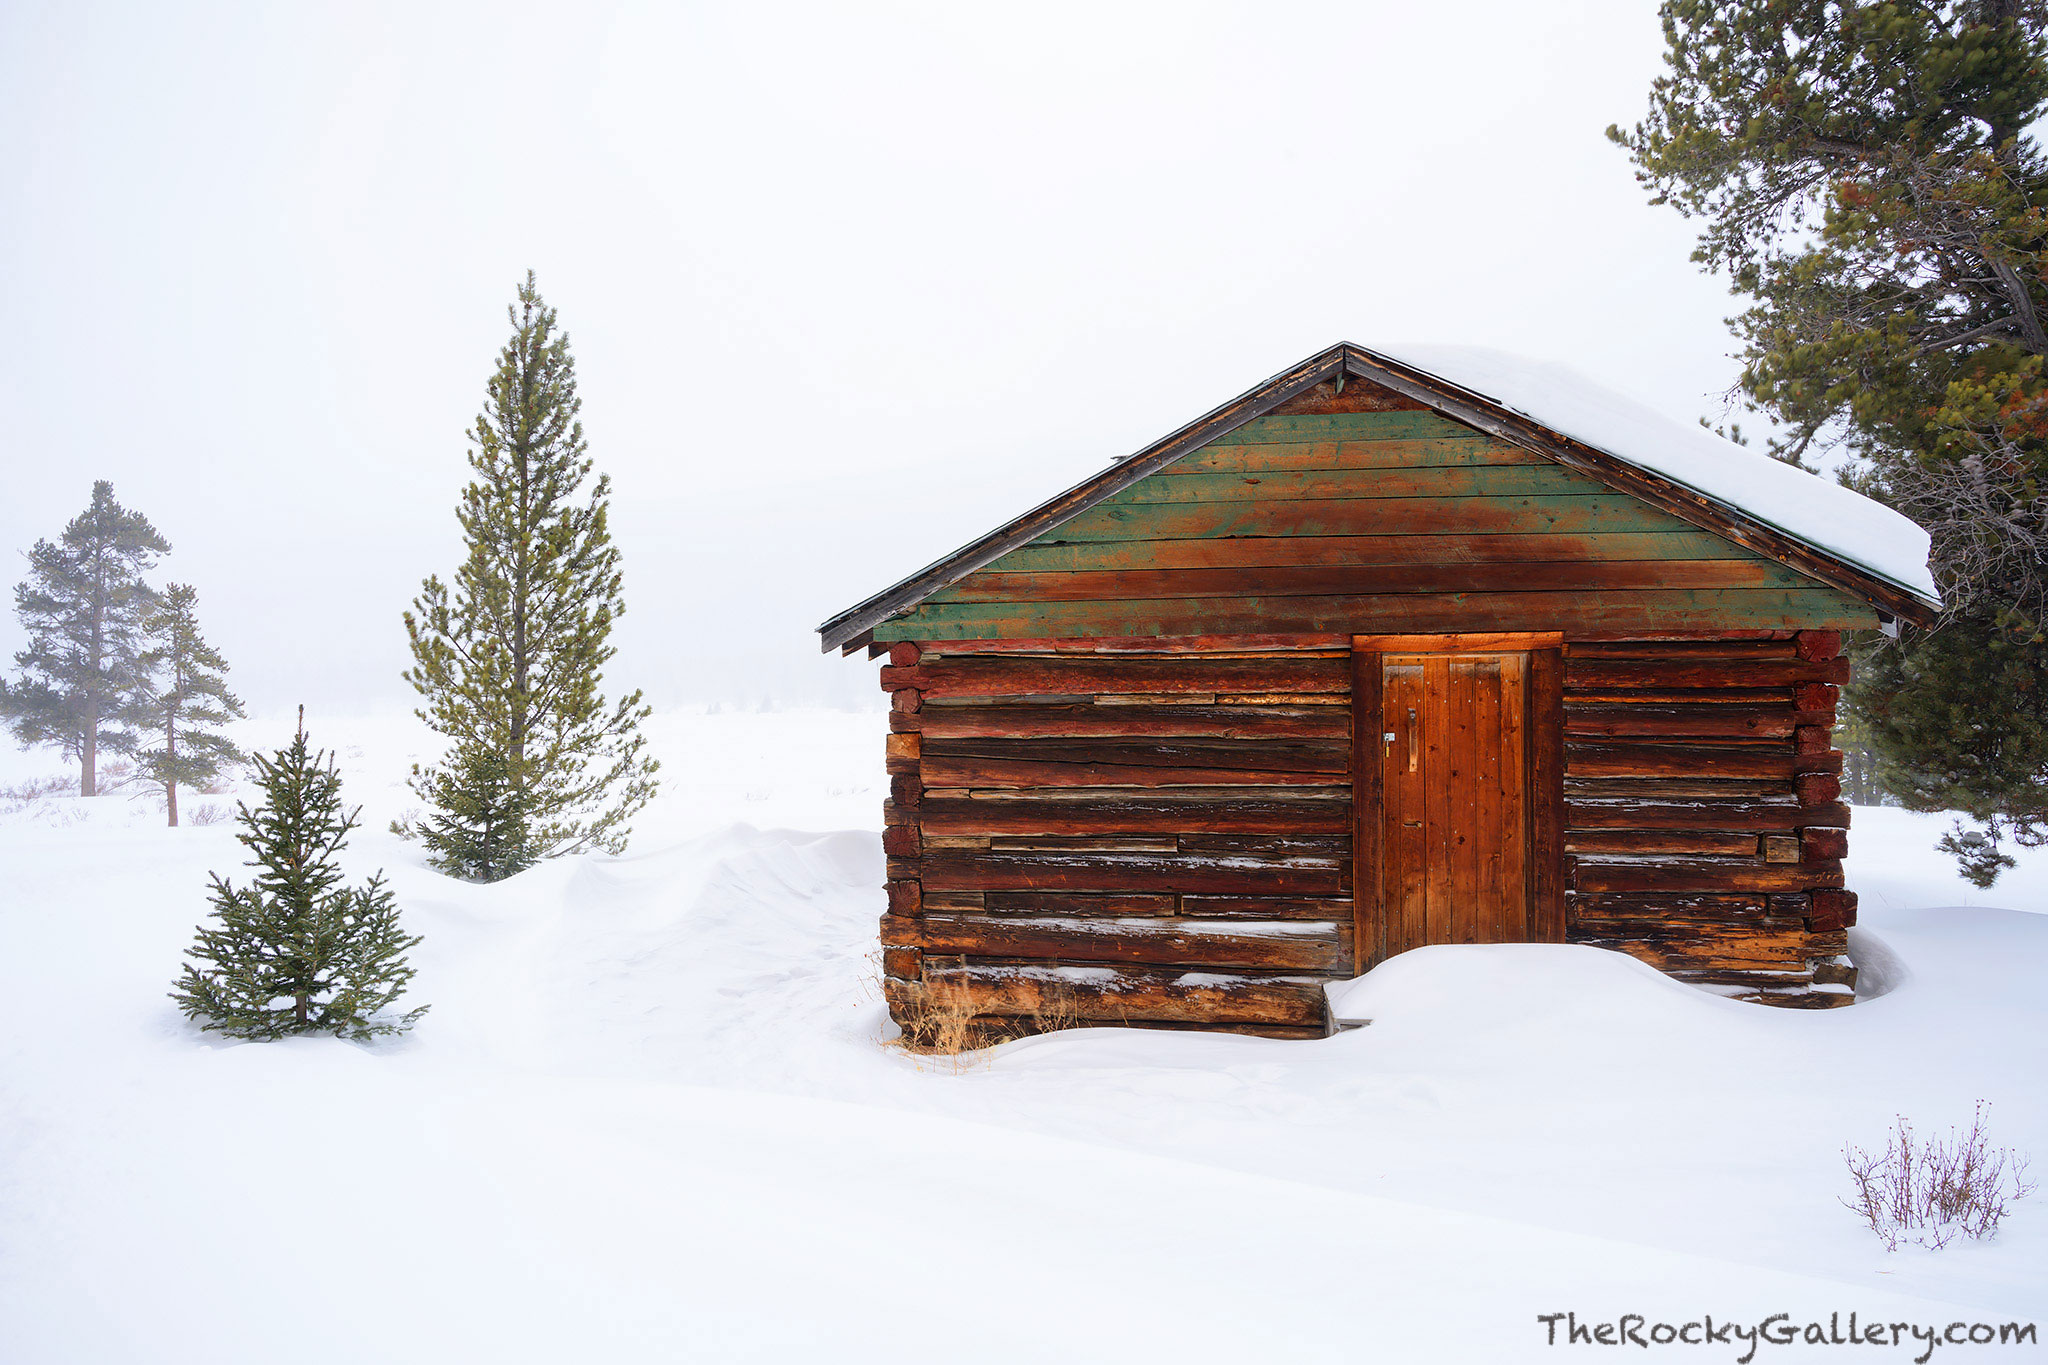 Holzwarth Historic District,Joseph Fleshut,Cabin,Kawuneeche Valley,RMNP,Rocky Mountain National Park,Colorado,Landscape,Photography,January,Winter,Holwarth Ranch,Homestead,West Side,Trail Ridge Road, , photo